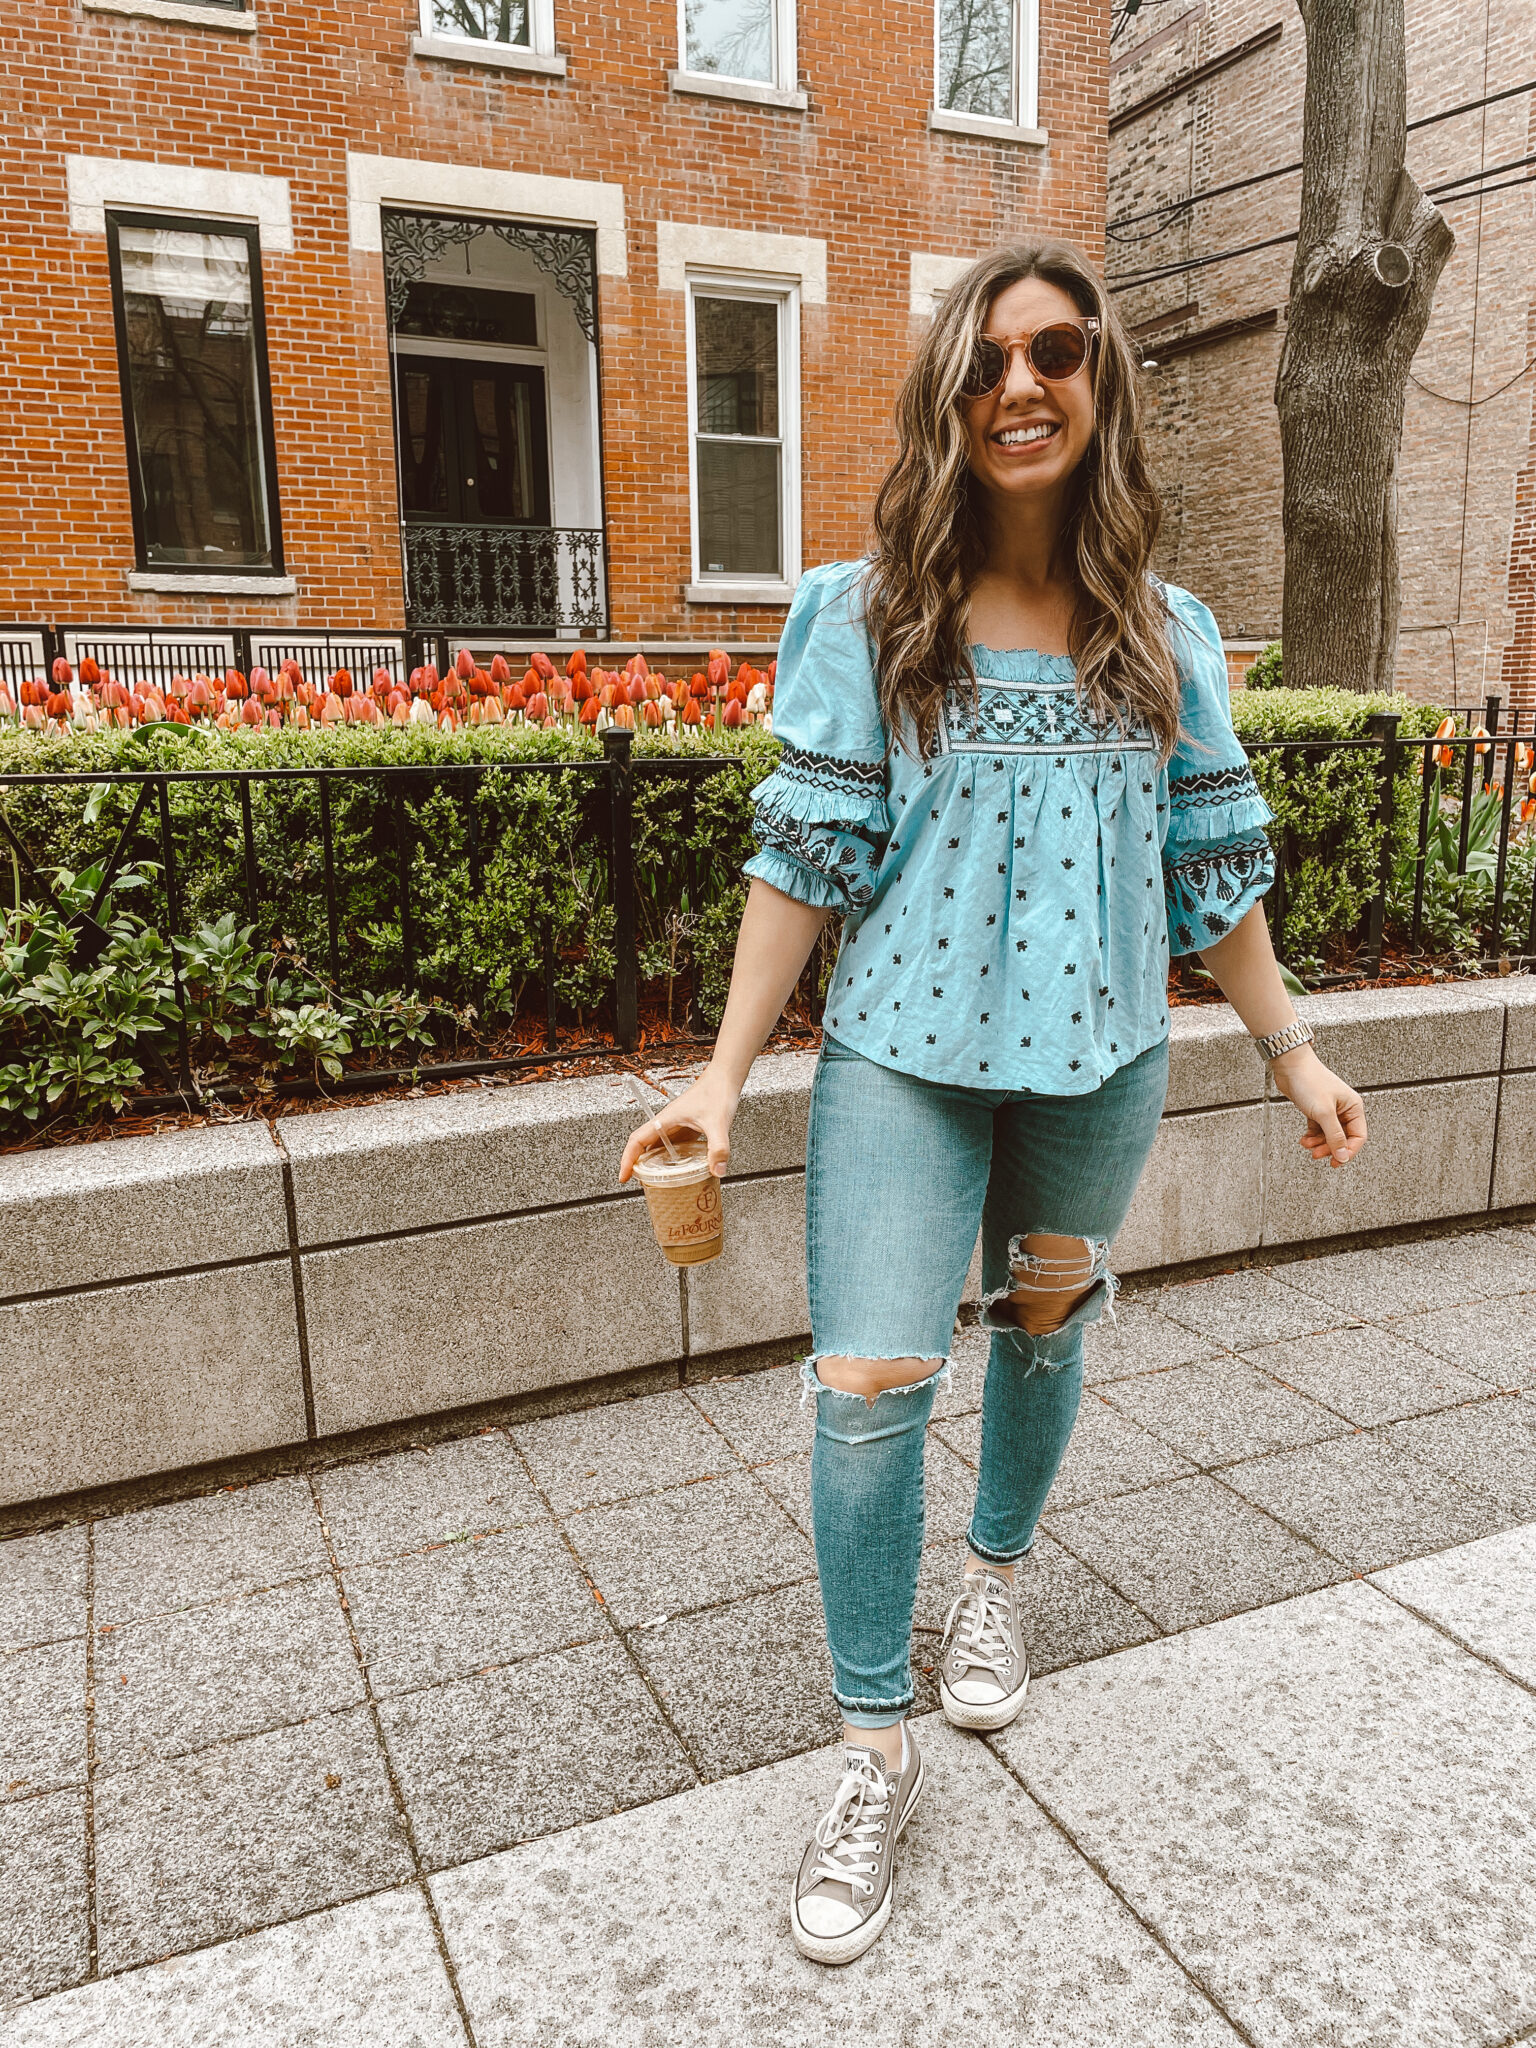 Square Neck Blouse by popular Chicago fashion blog, Glass of Glam: image of a woman standing outside and holding a iced coffee while wearing a blue embroidered blouse, distressed denim, and Converse sneakers.